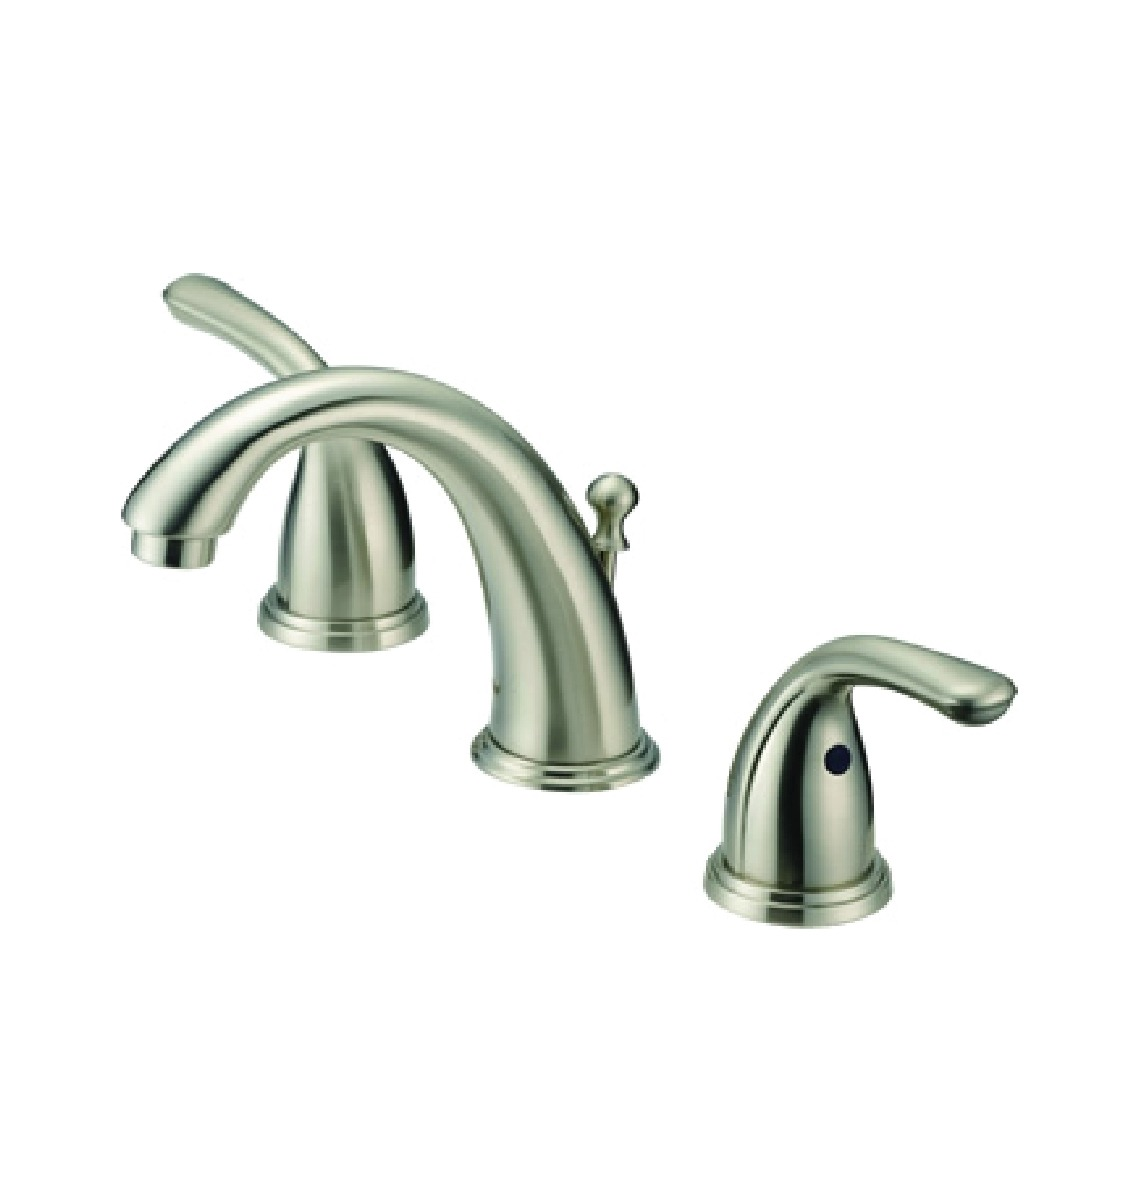 Silver Oak P20262 15 6 12 Two Handle Widespread Lavatory Faucet Nickel F